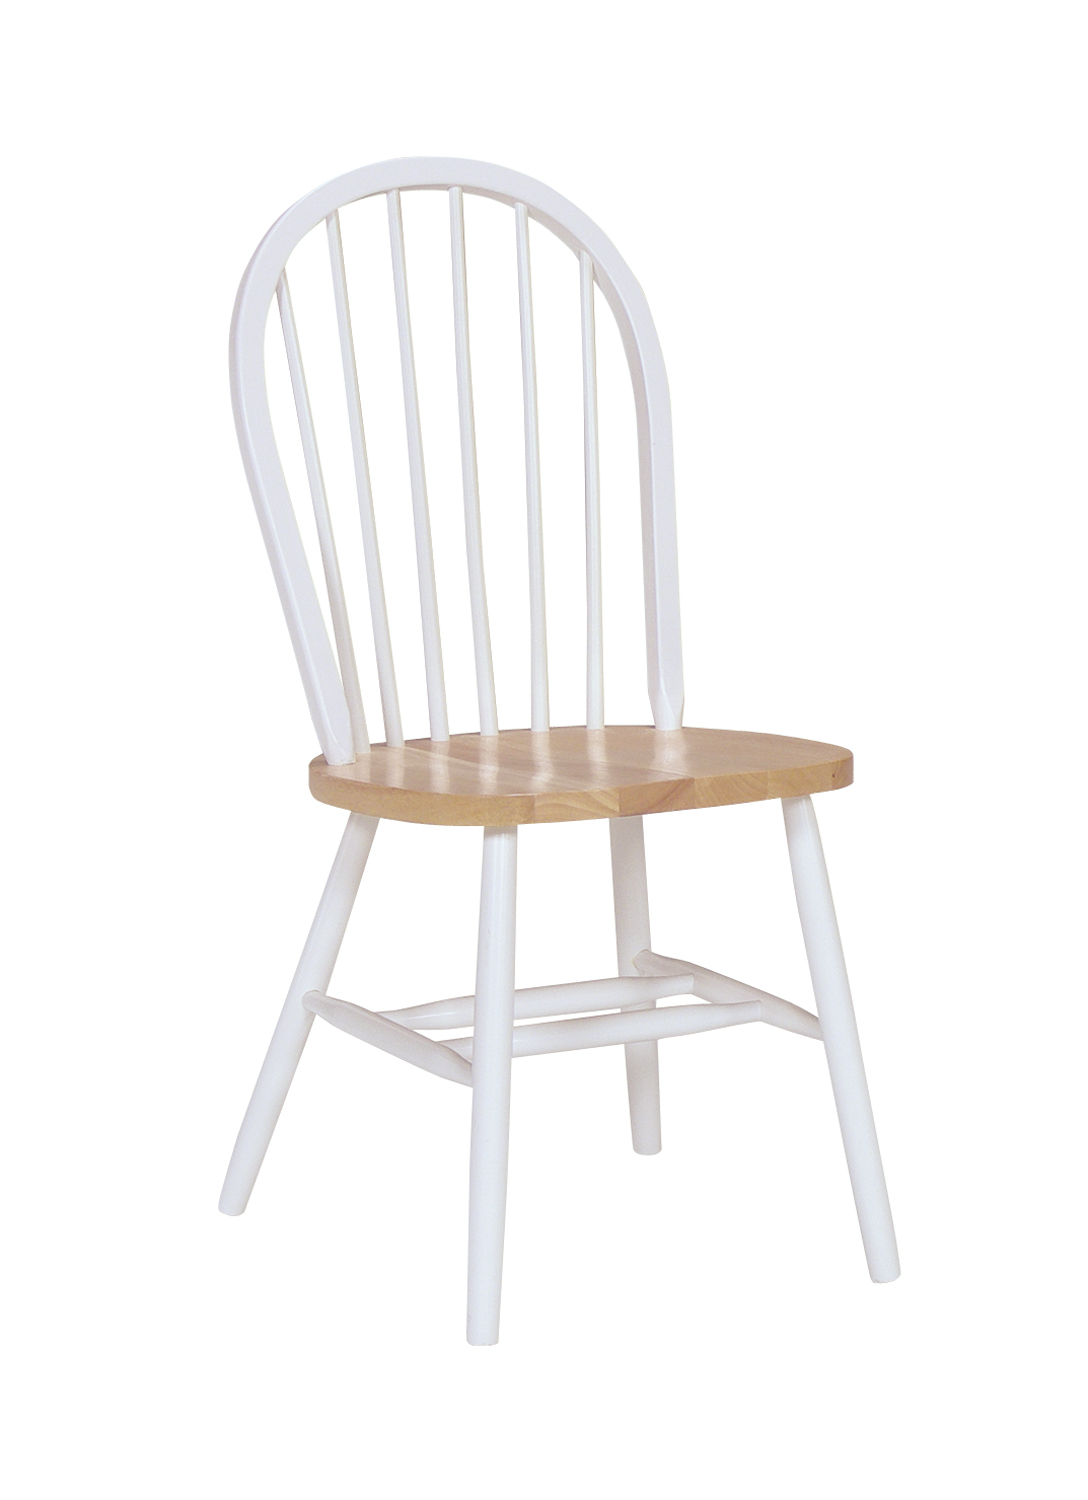 The Dining Essentials Spindle Windsor Chair Is A Classic